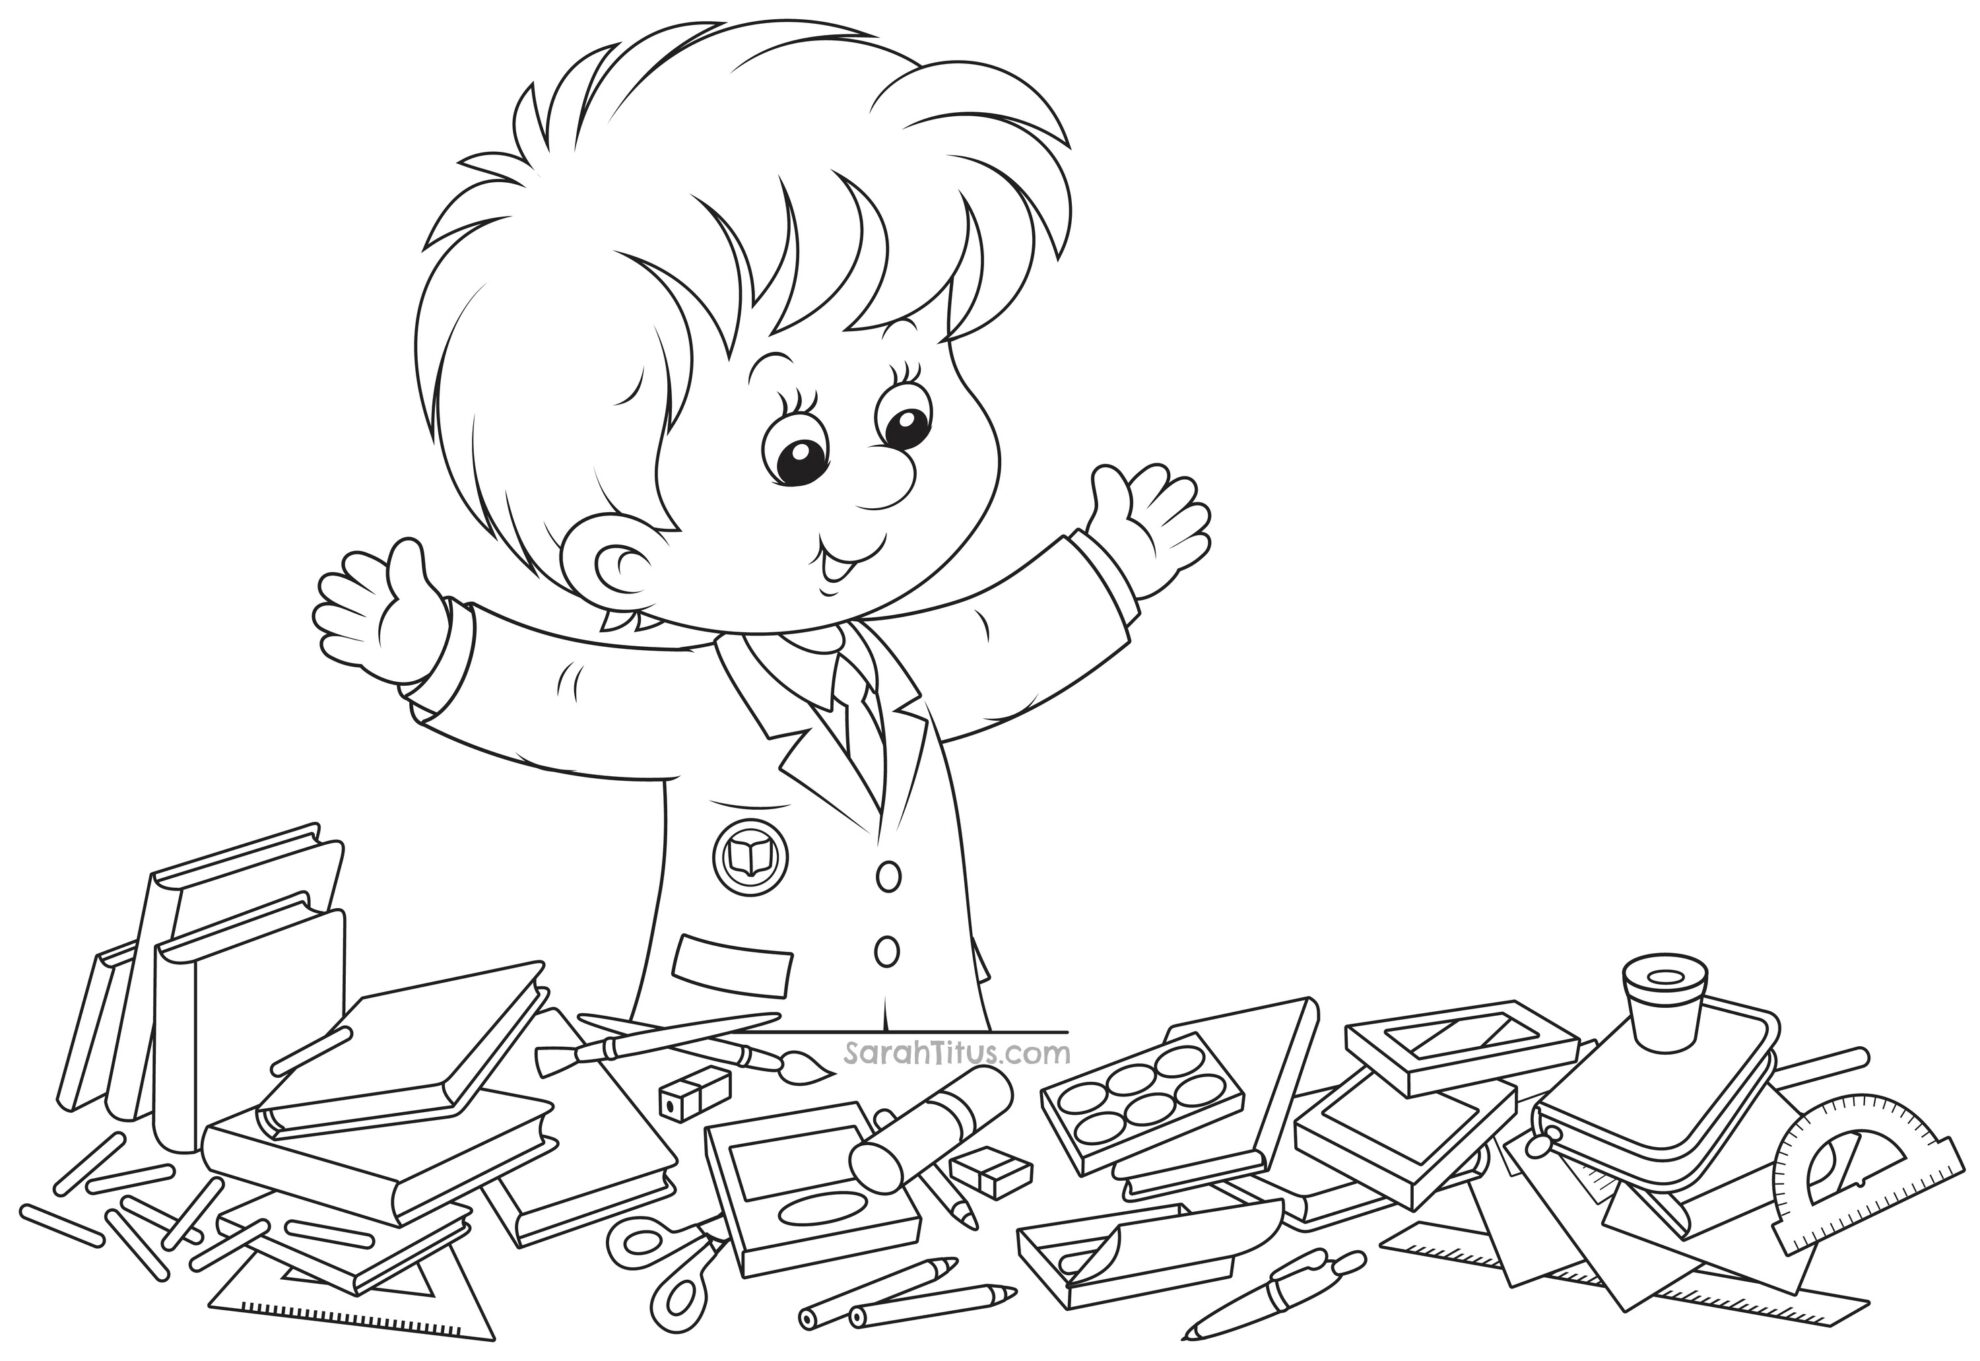 elementary school coloring pages back to school coloring pages sarah titus from pages elementary school coloring